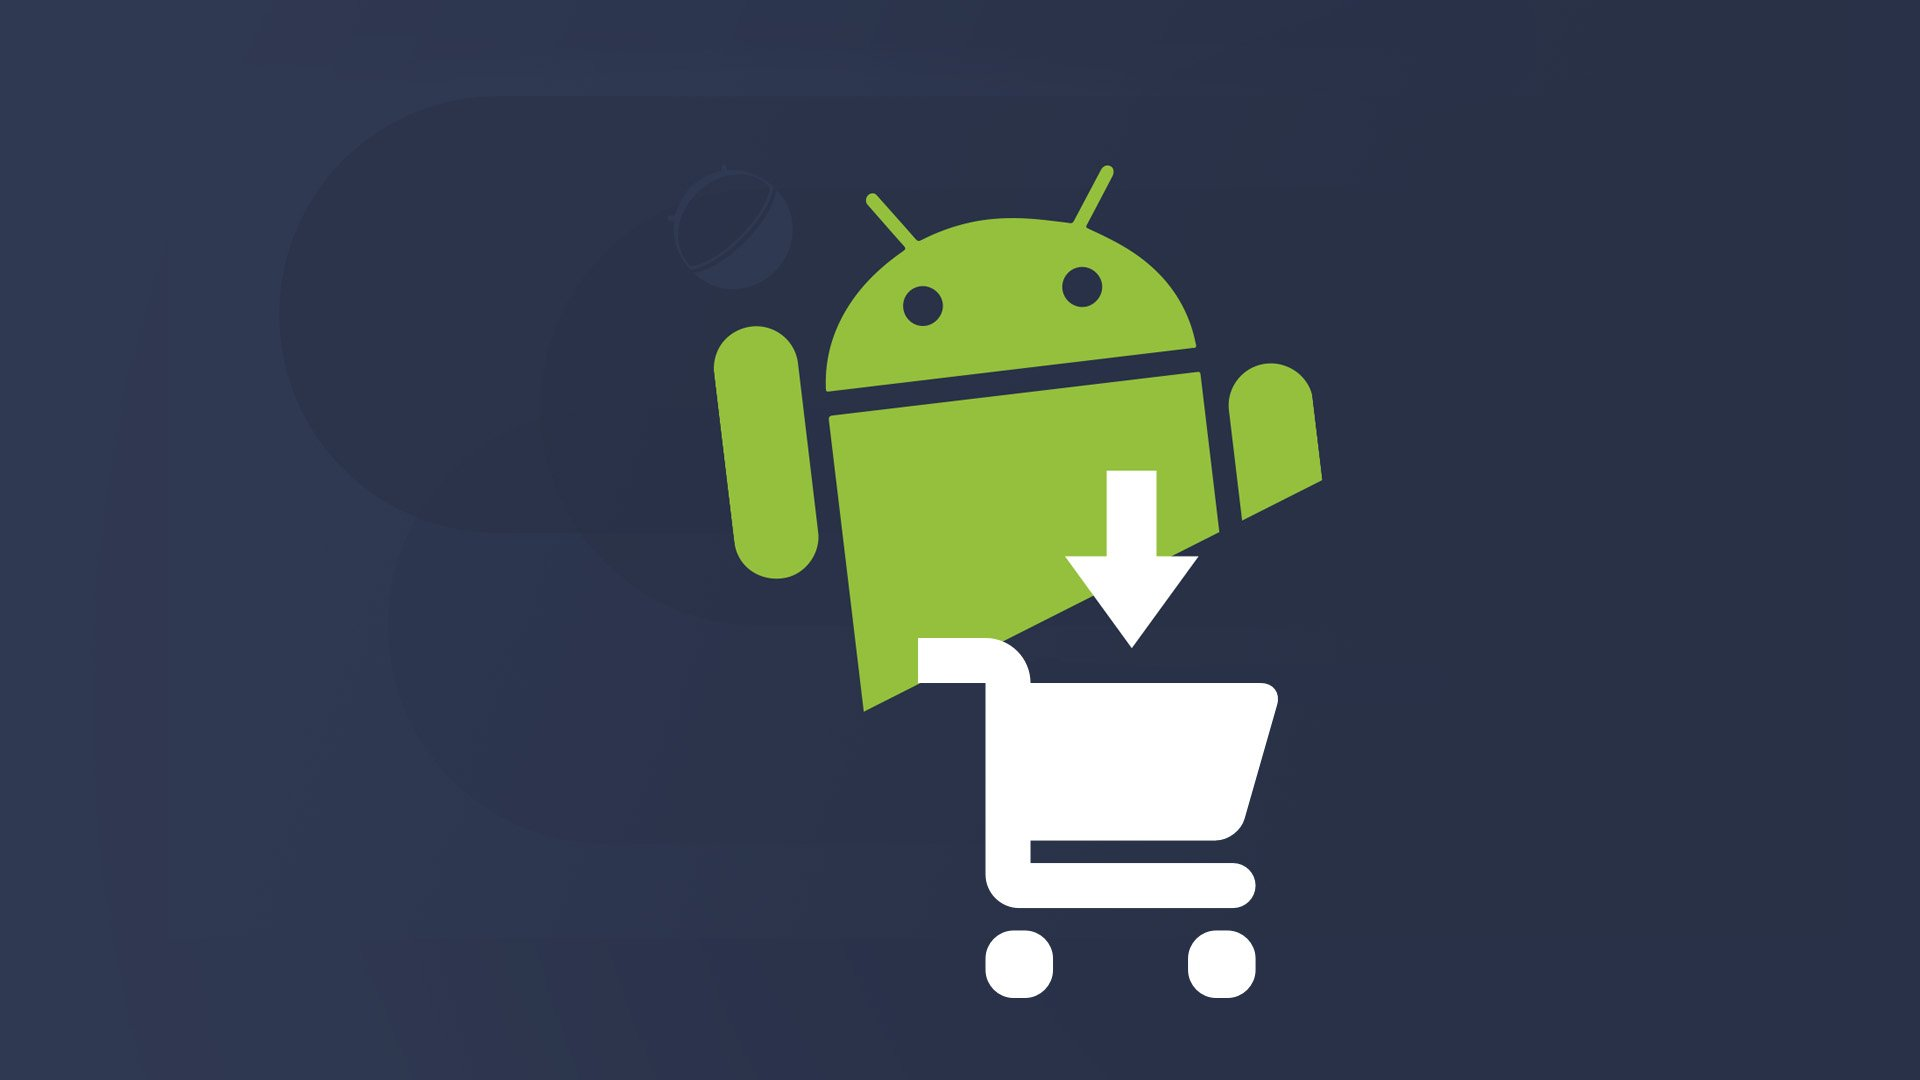 installer des applications android